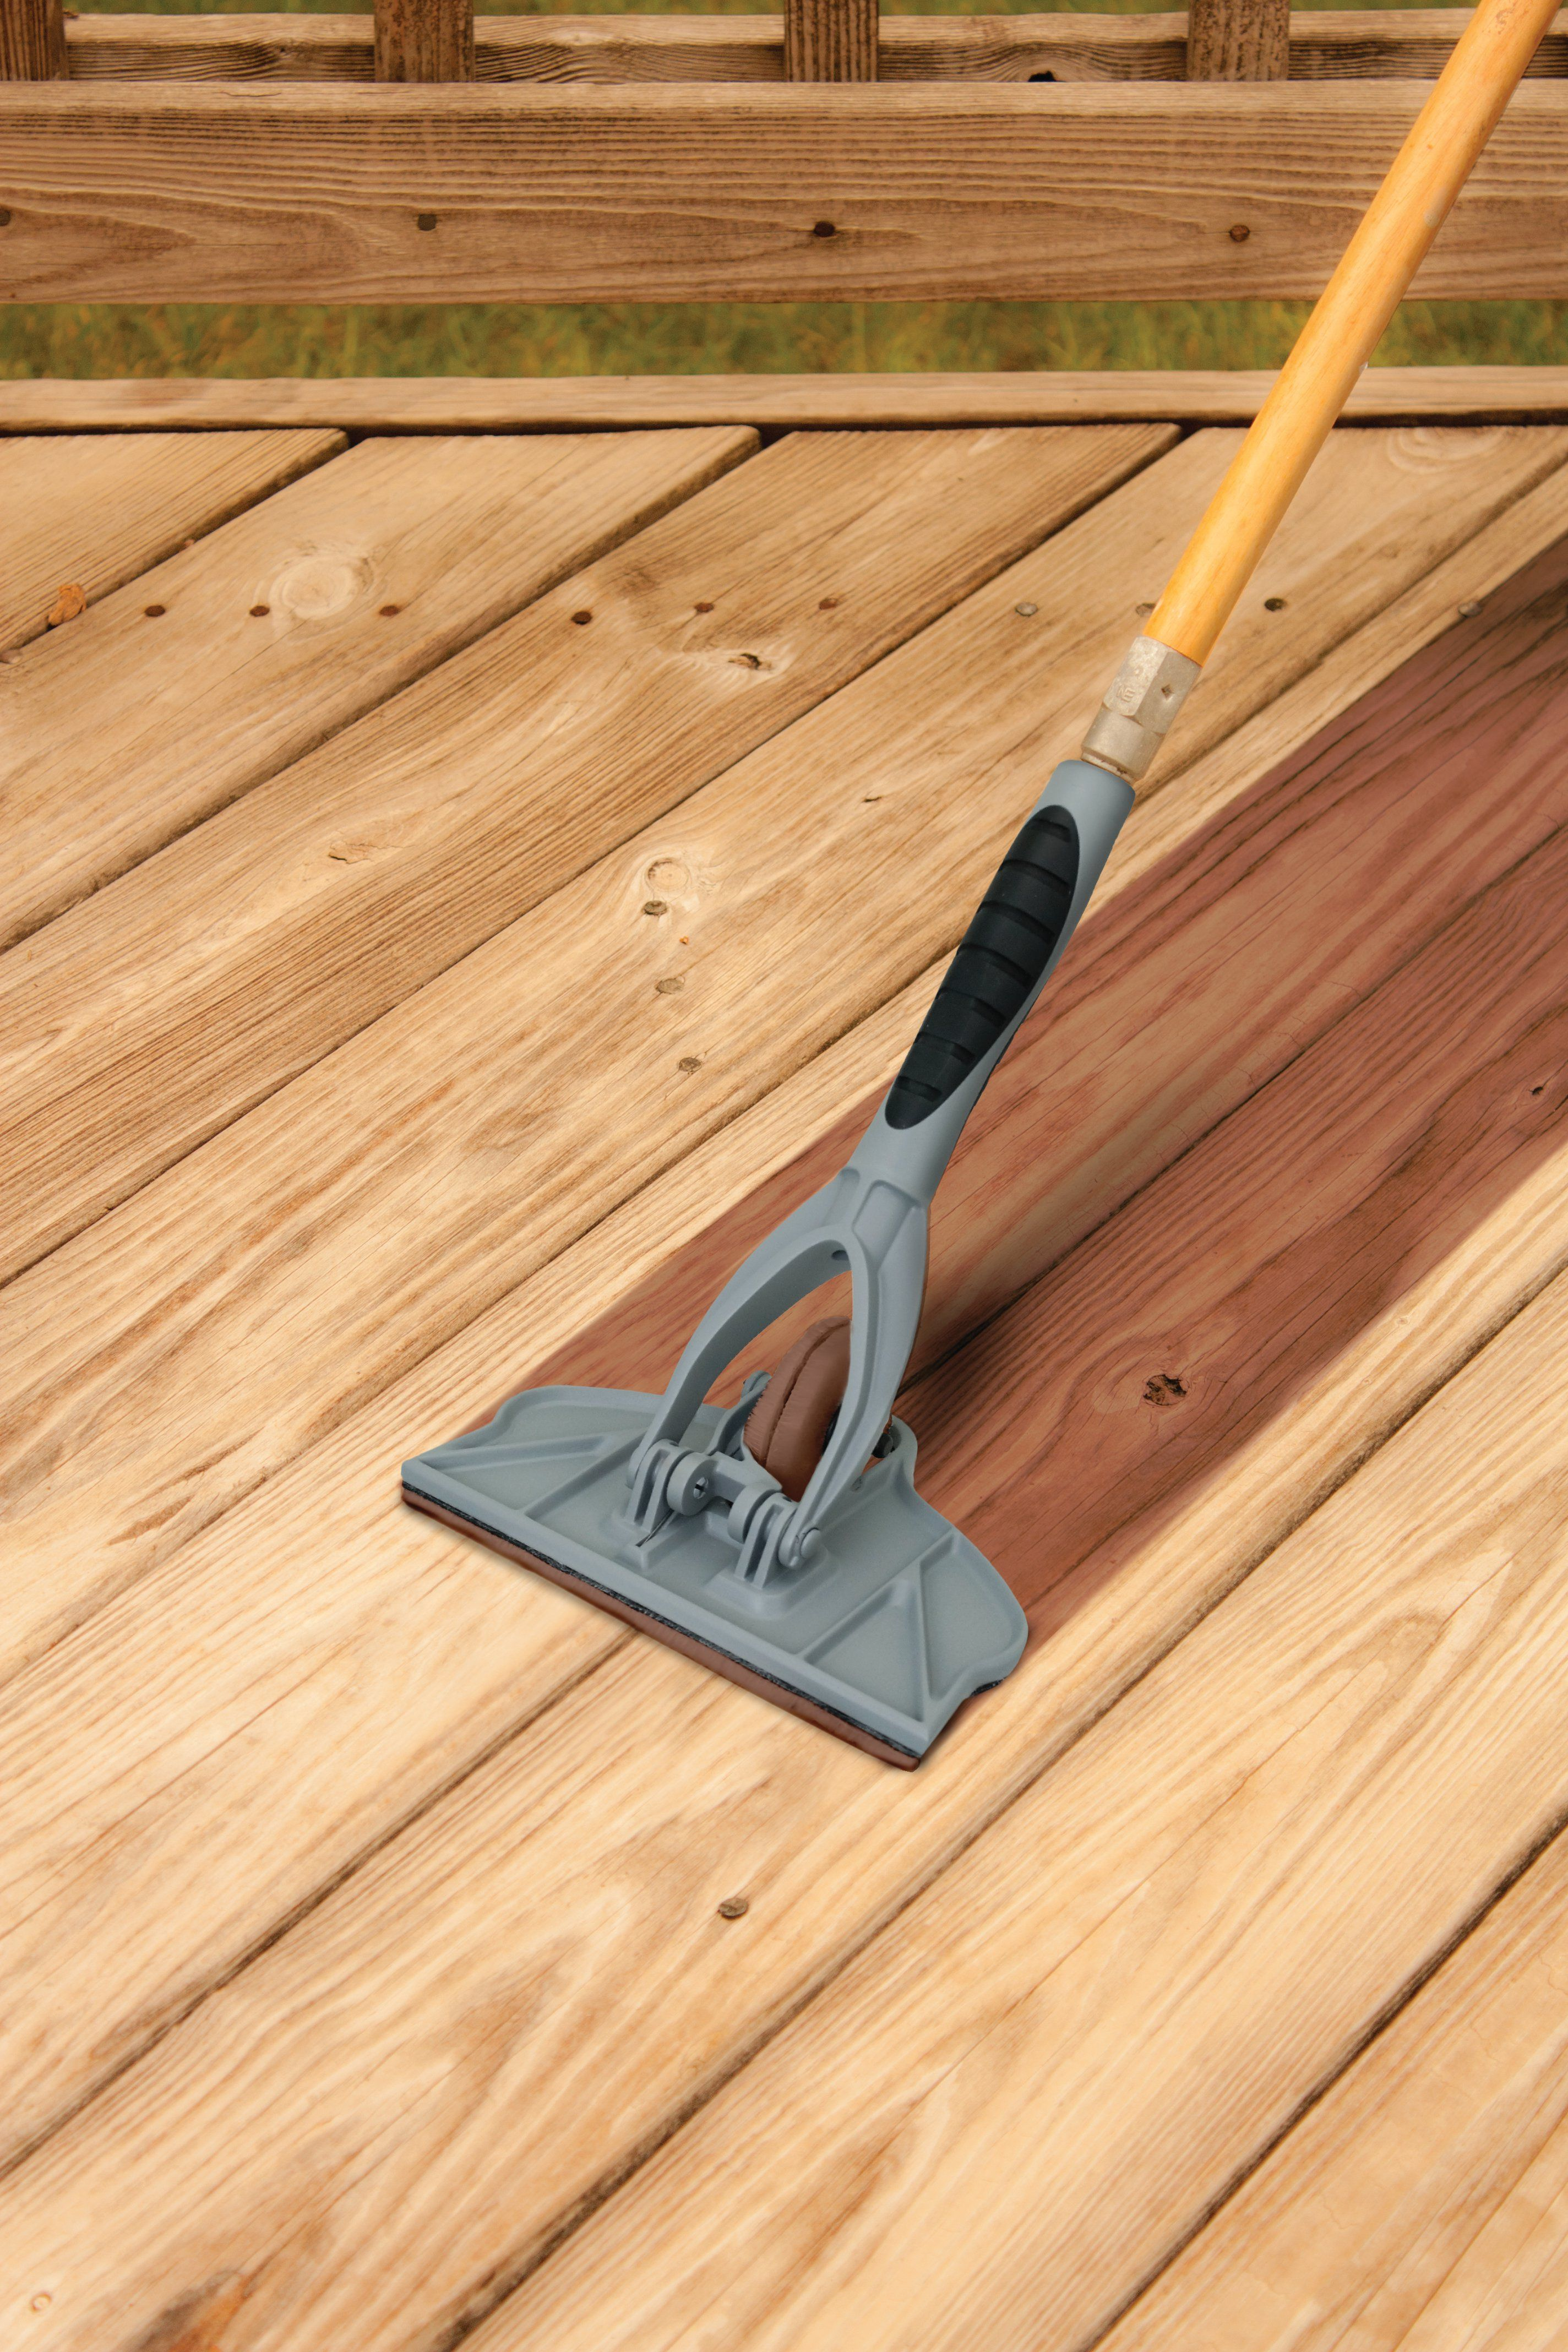 Deck Pro With Gap Wheel Stain Applicator Staining Deck Staining Wood Deck Brush